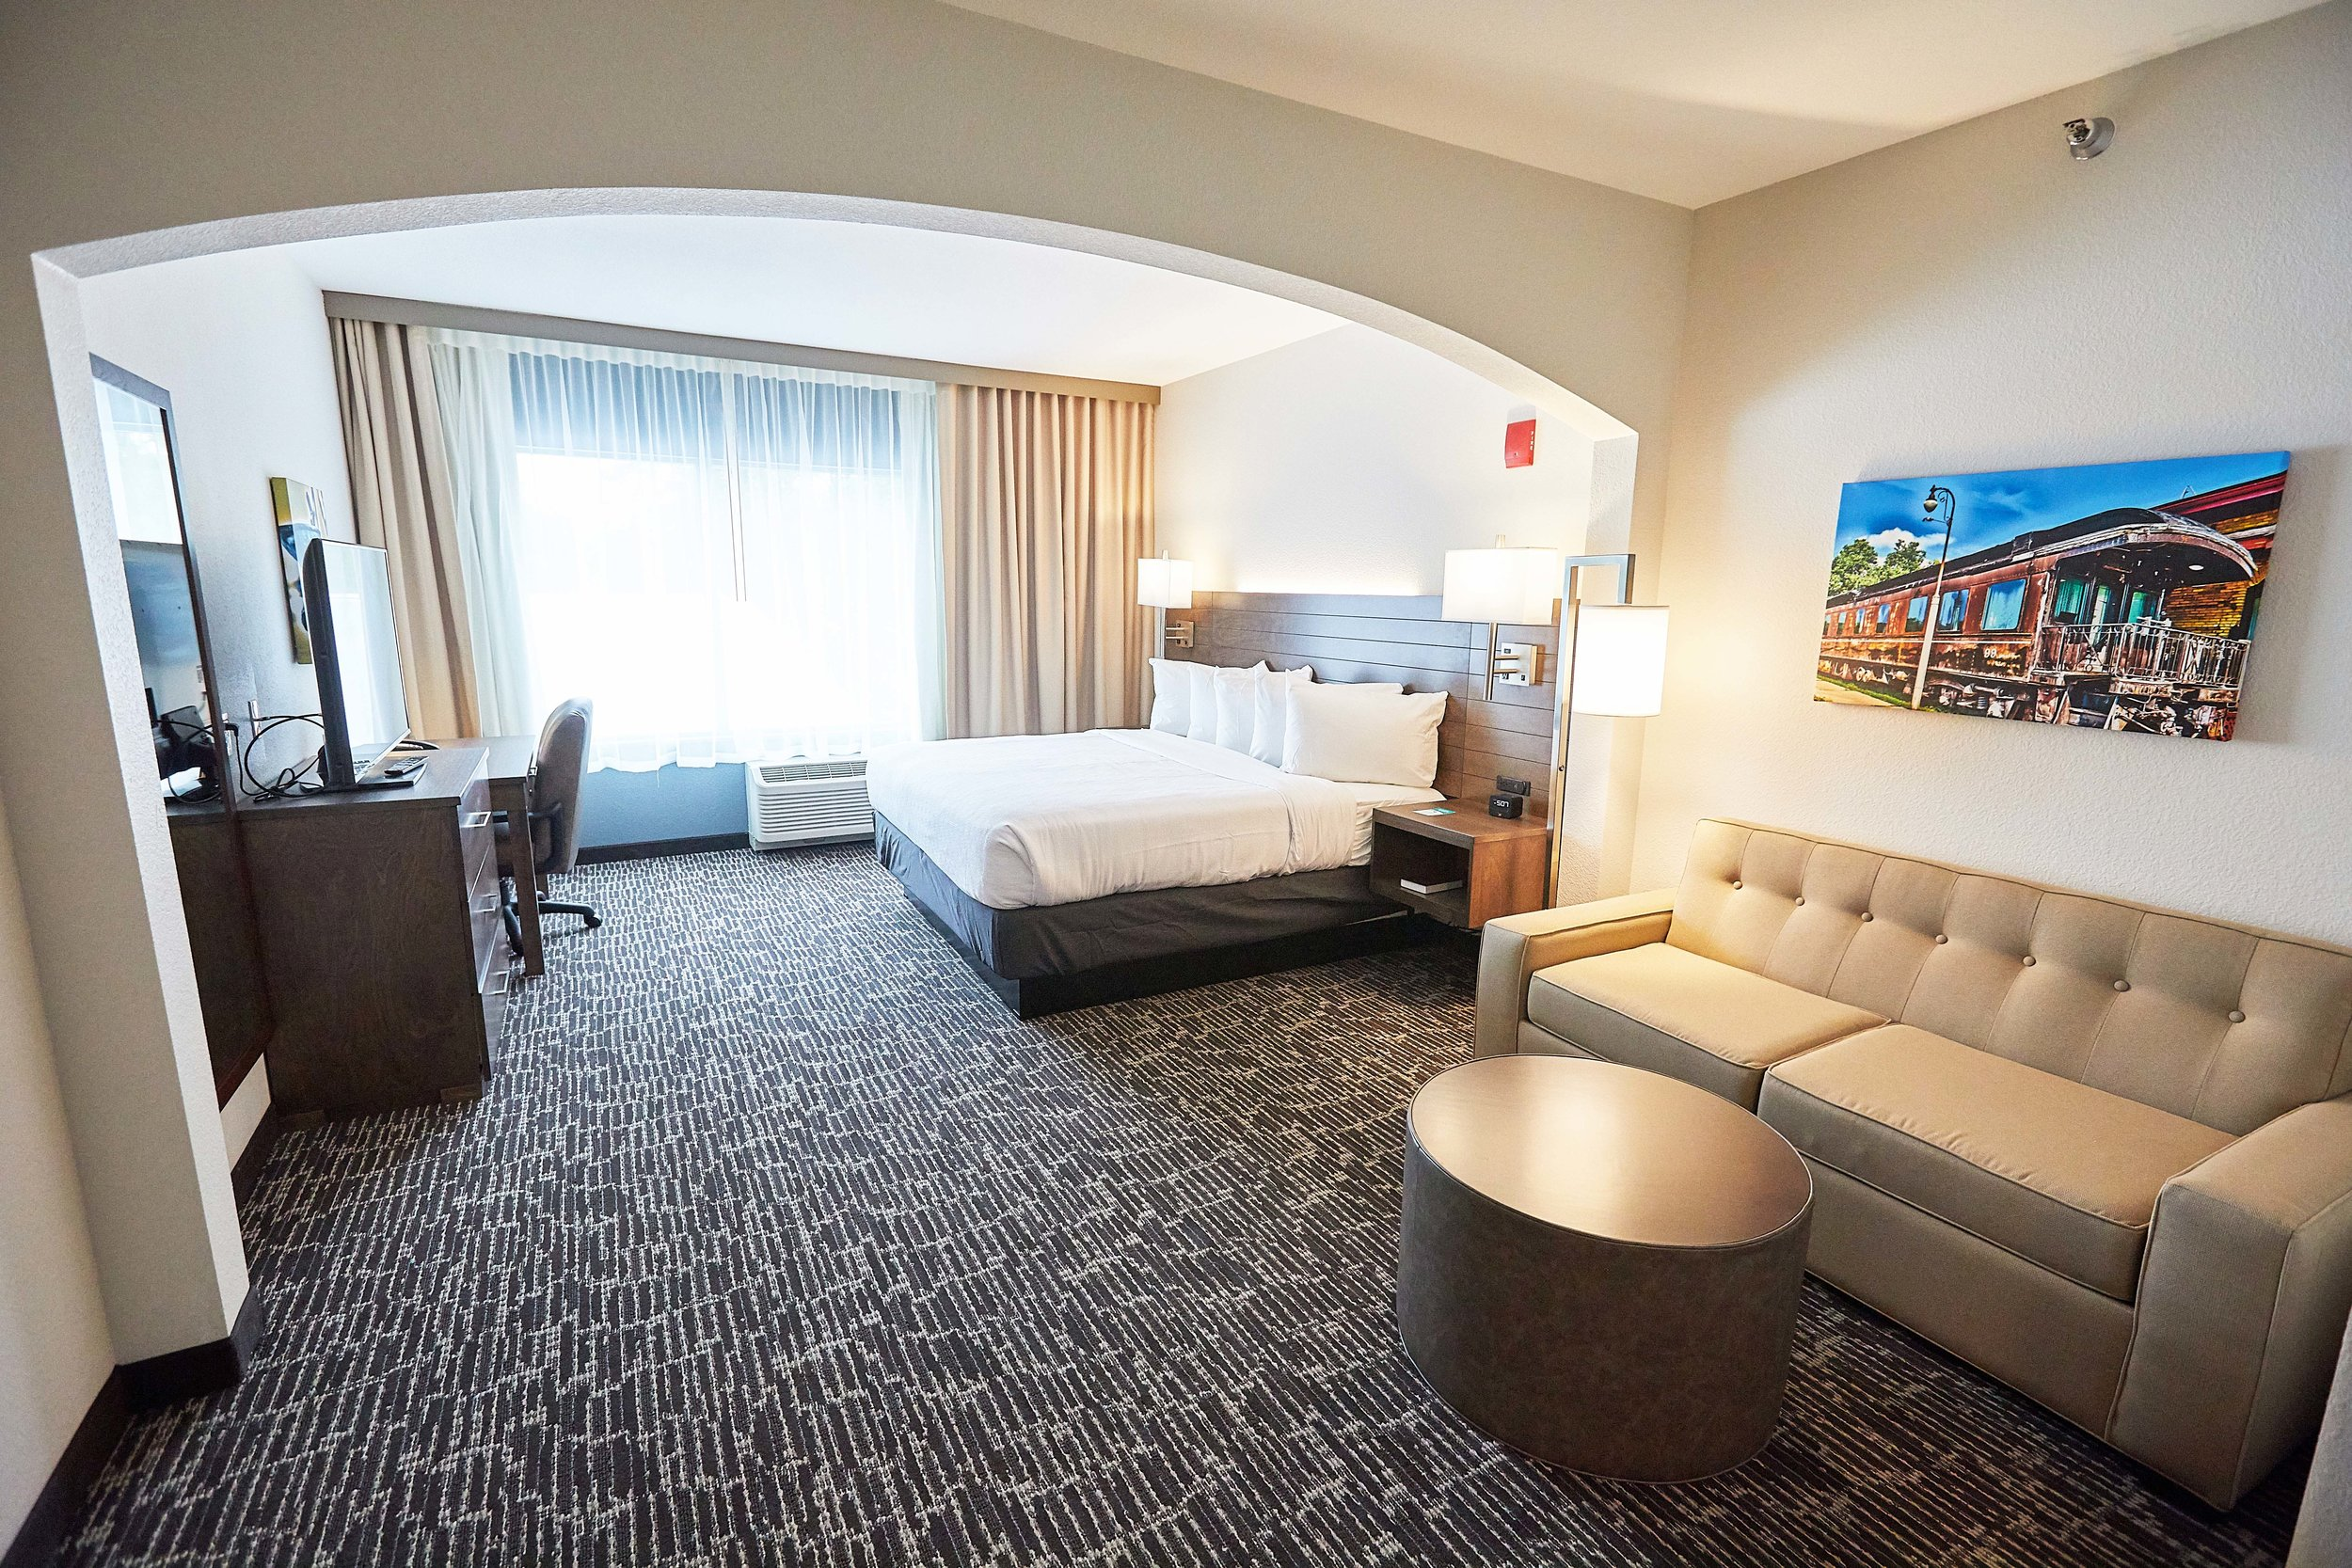 Spacious king executive studio room, with plush king bed and sleep sofa for up to 4 guests